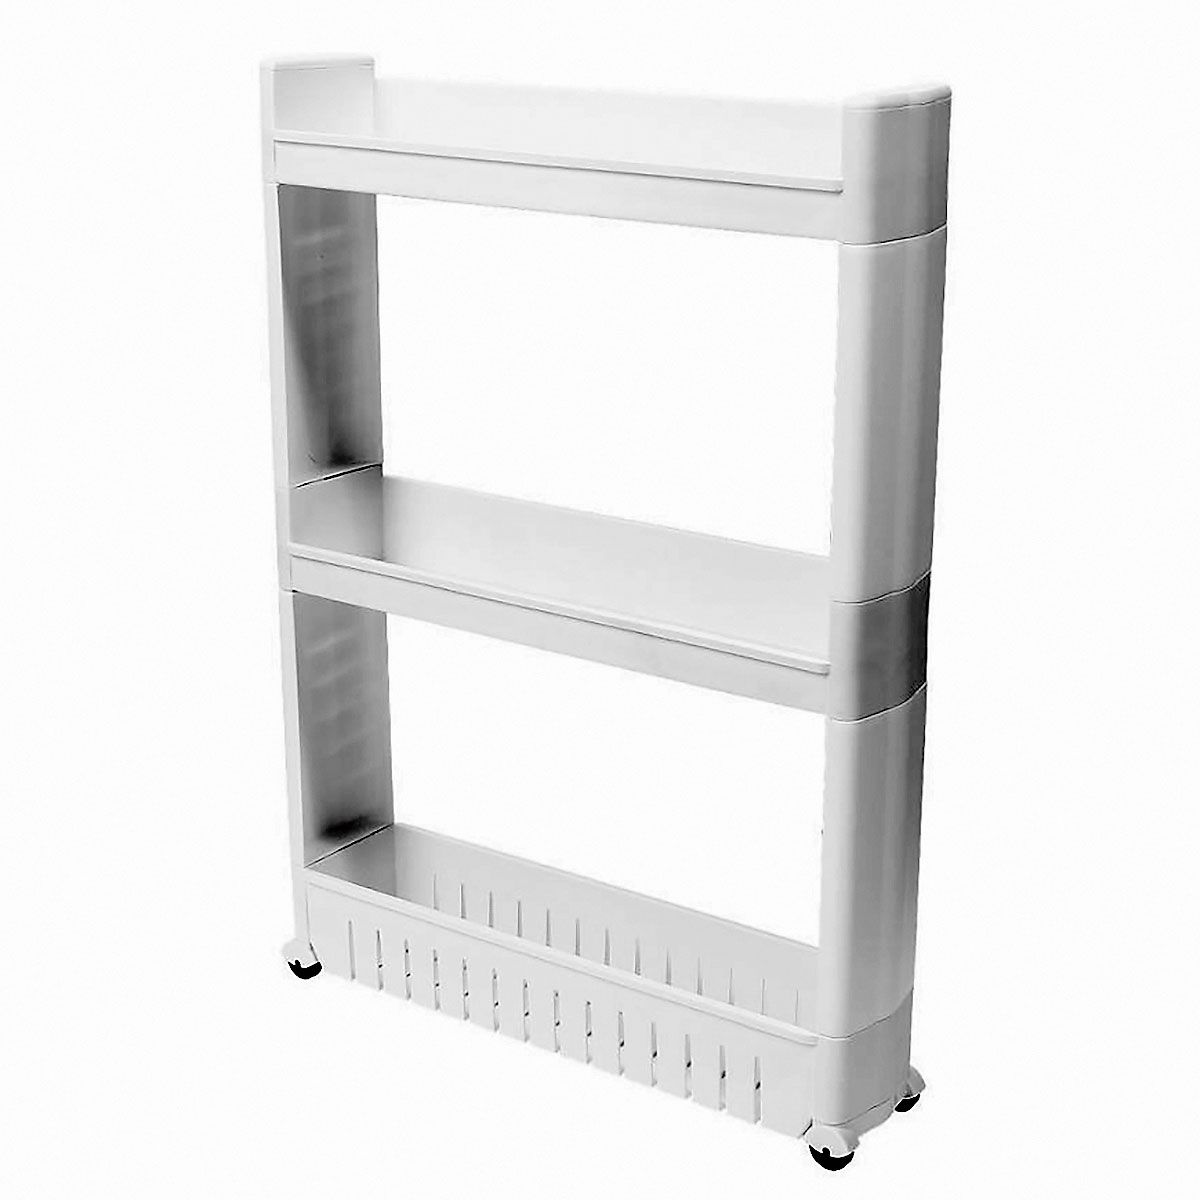 Slide-out Storage Tower